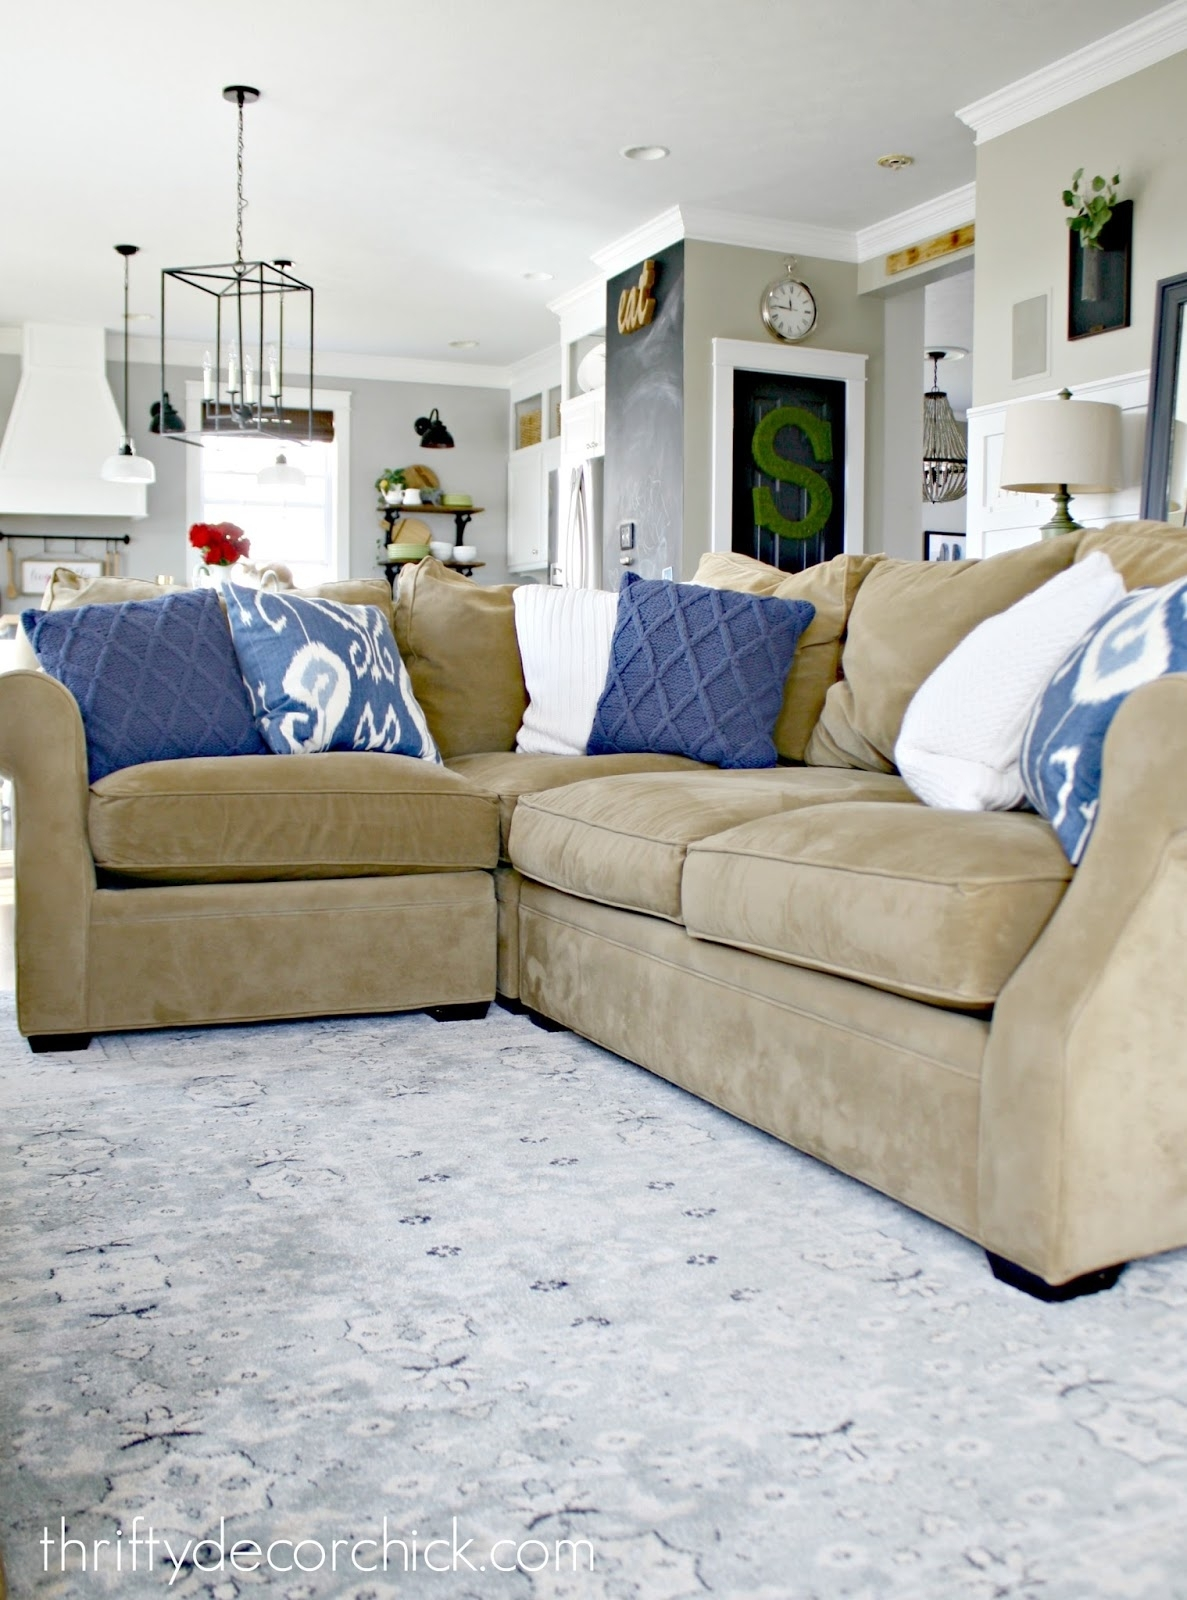 A Review Of Our Most Expensive Purchase! From Thrifty Decor Chick Within Harper Down 3 Piece Sectionals (View 21 of 25)